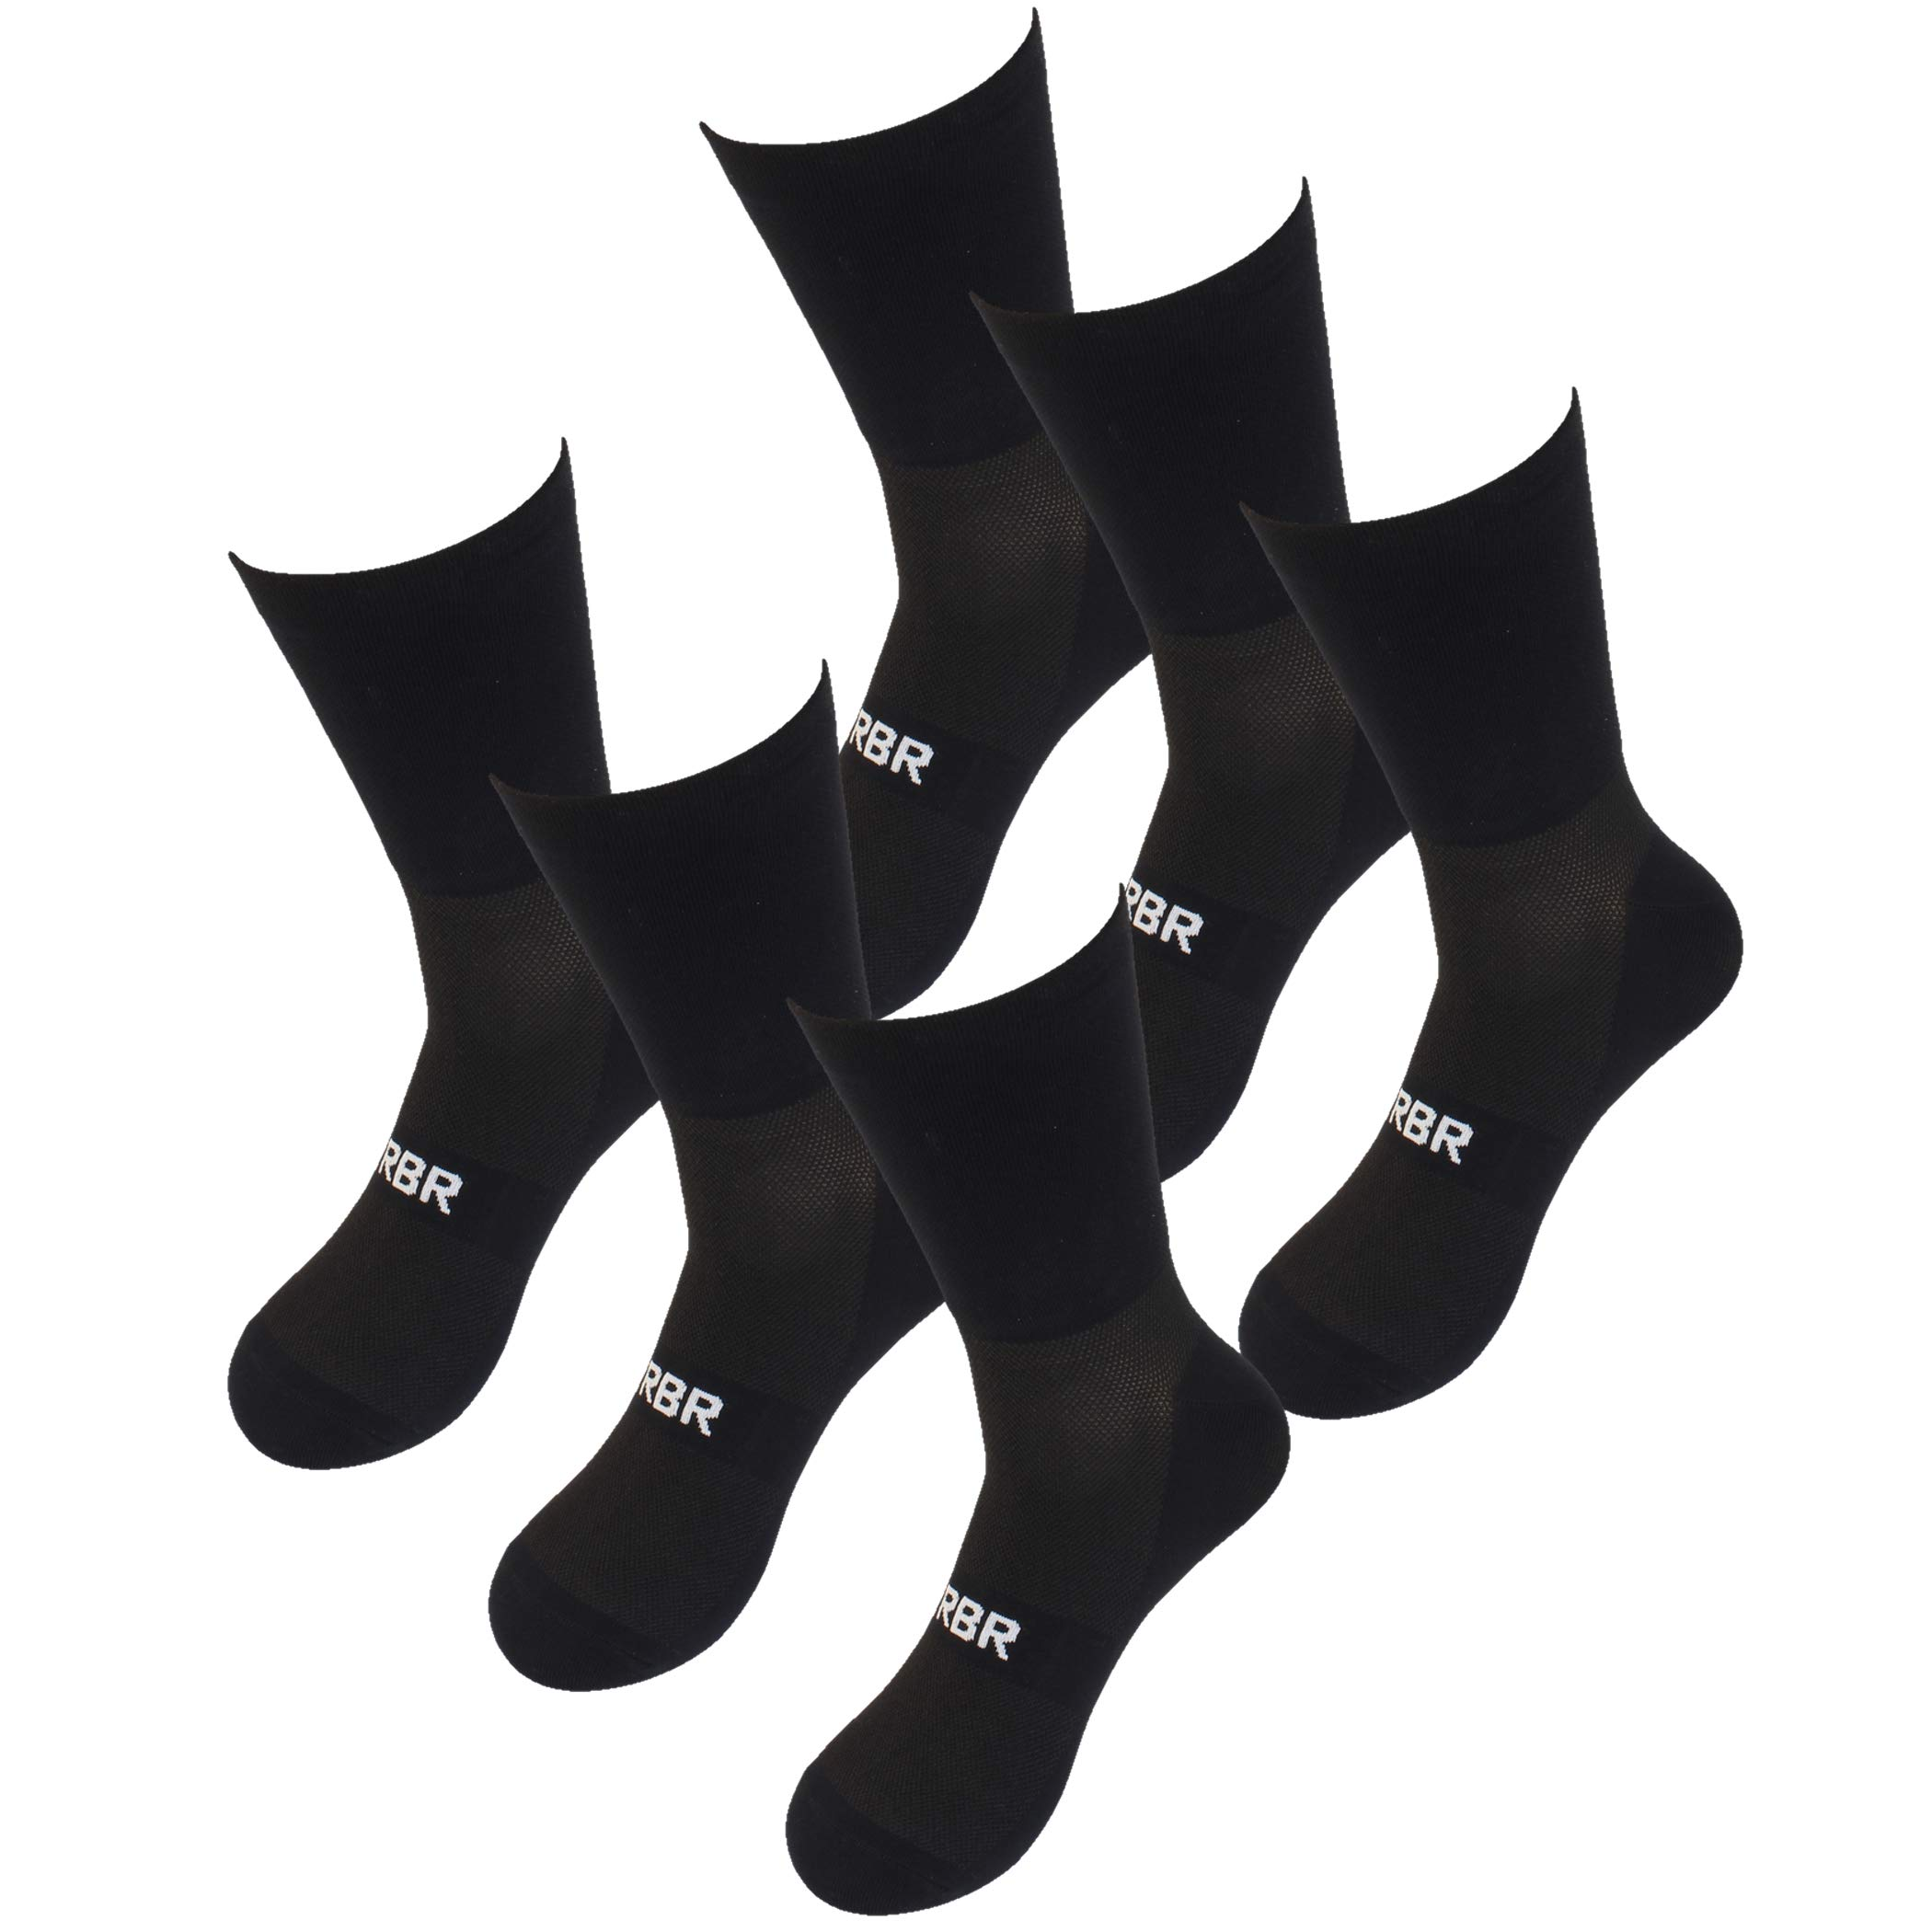 RBR Cycling Running Sports Socks Men Size 9-12 High Visibility Fluoresent 3 Pack (black) by Road Bike Rider